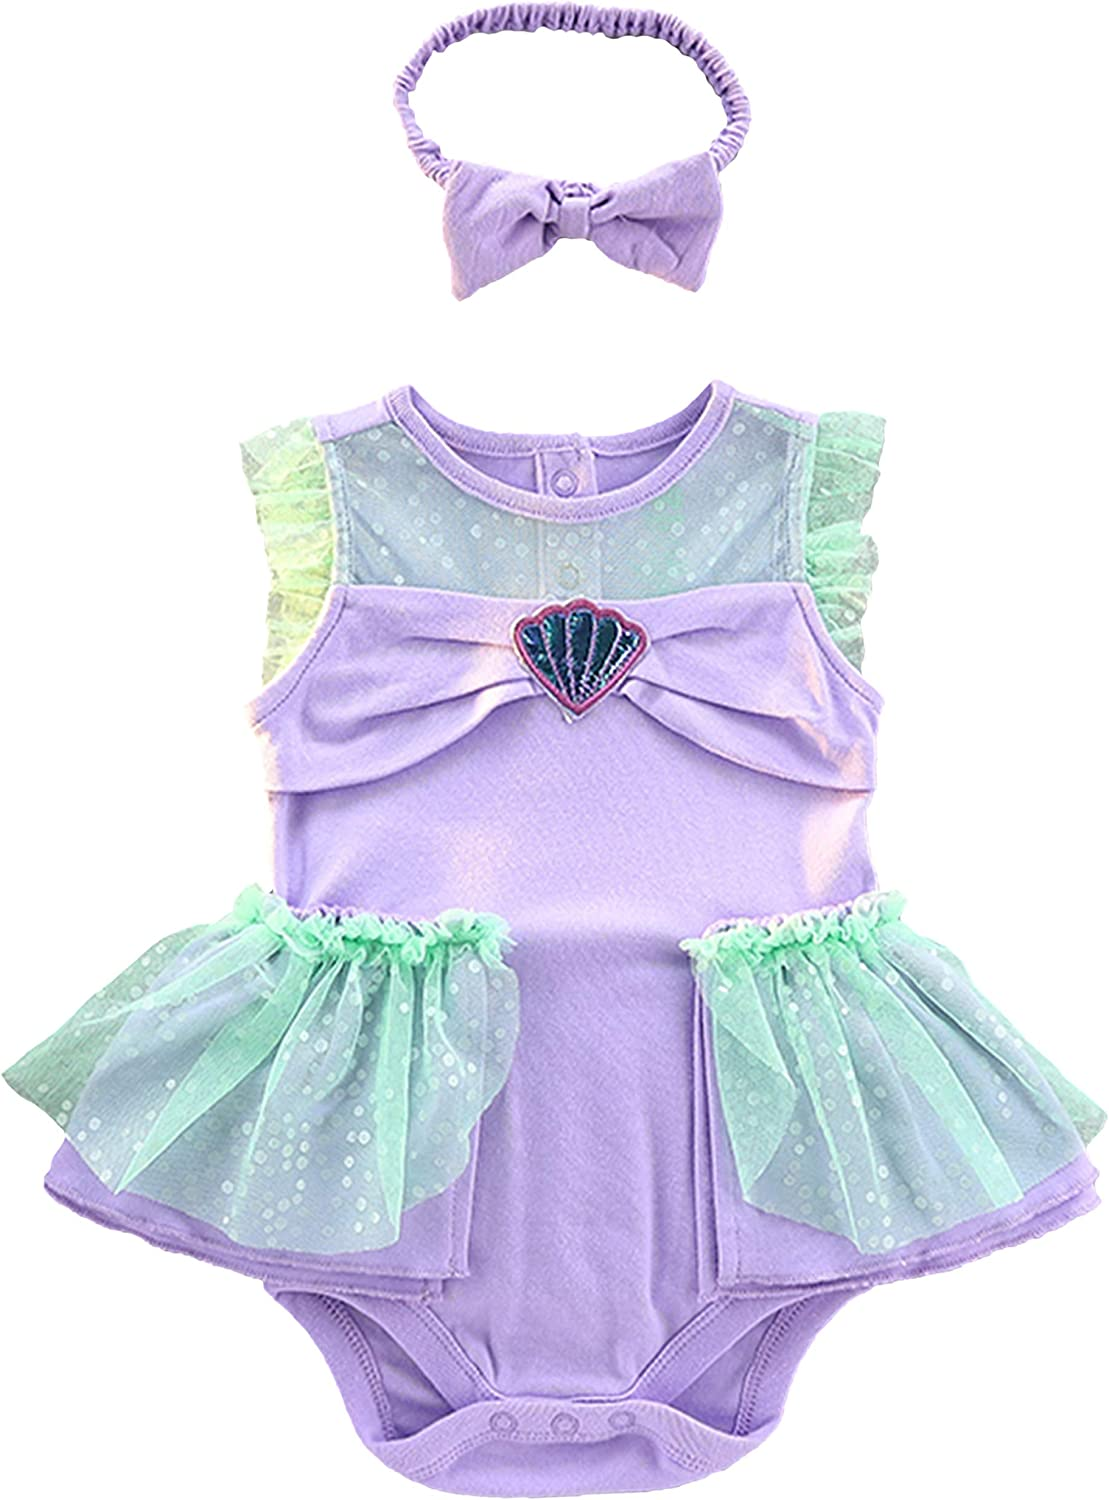 stylesilove.com Baby Girls Snow Princess Romper Dress with Headband 2pcs Halloween Costume Outfit